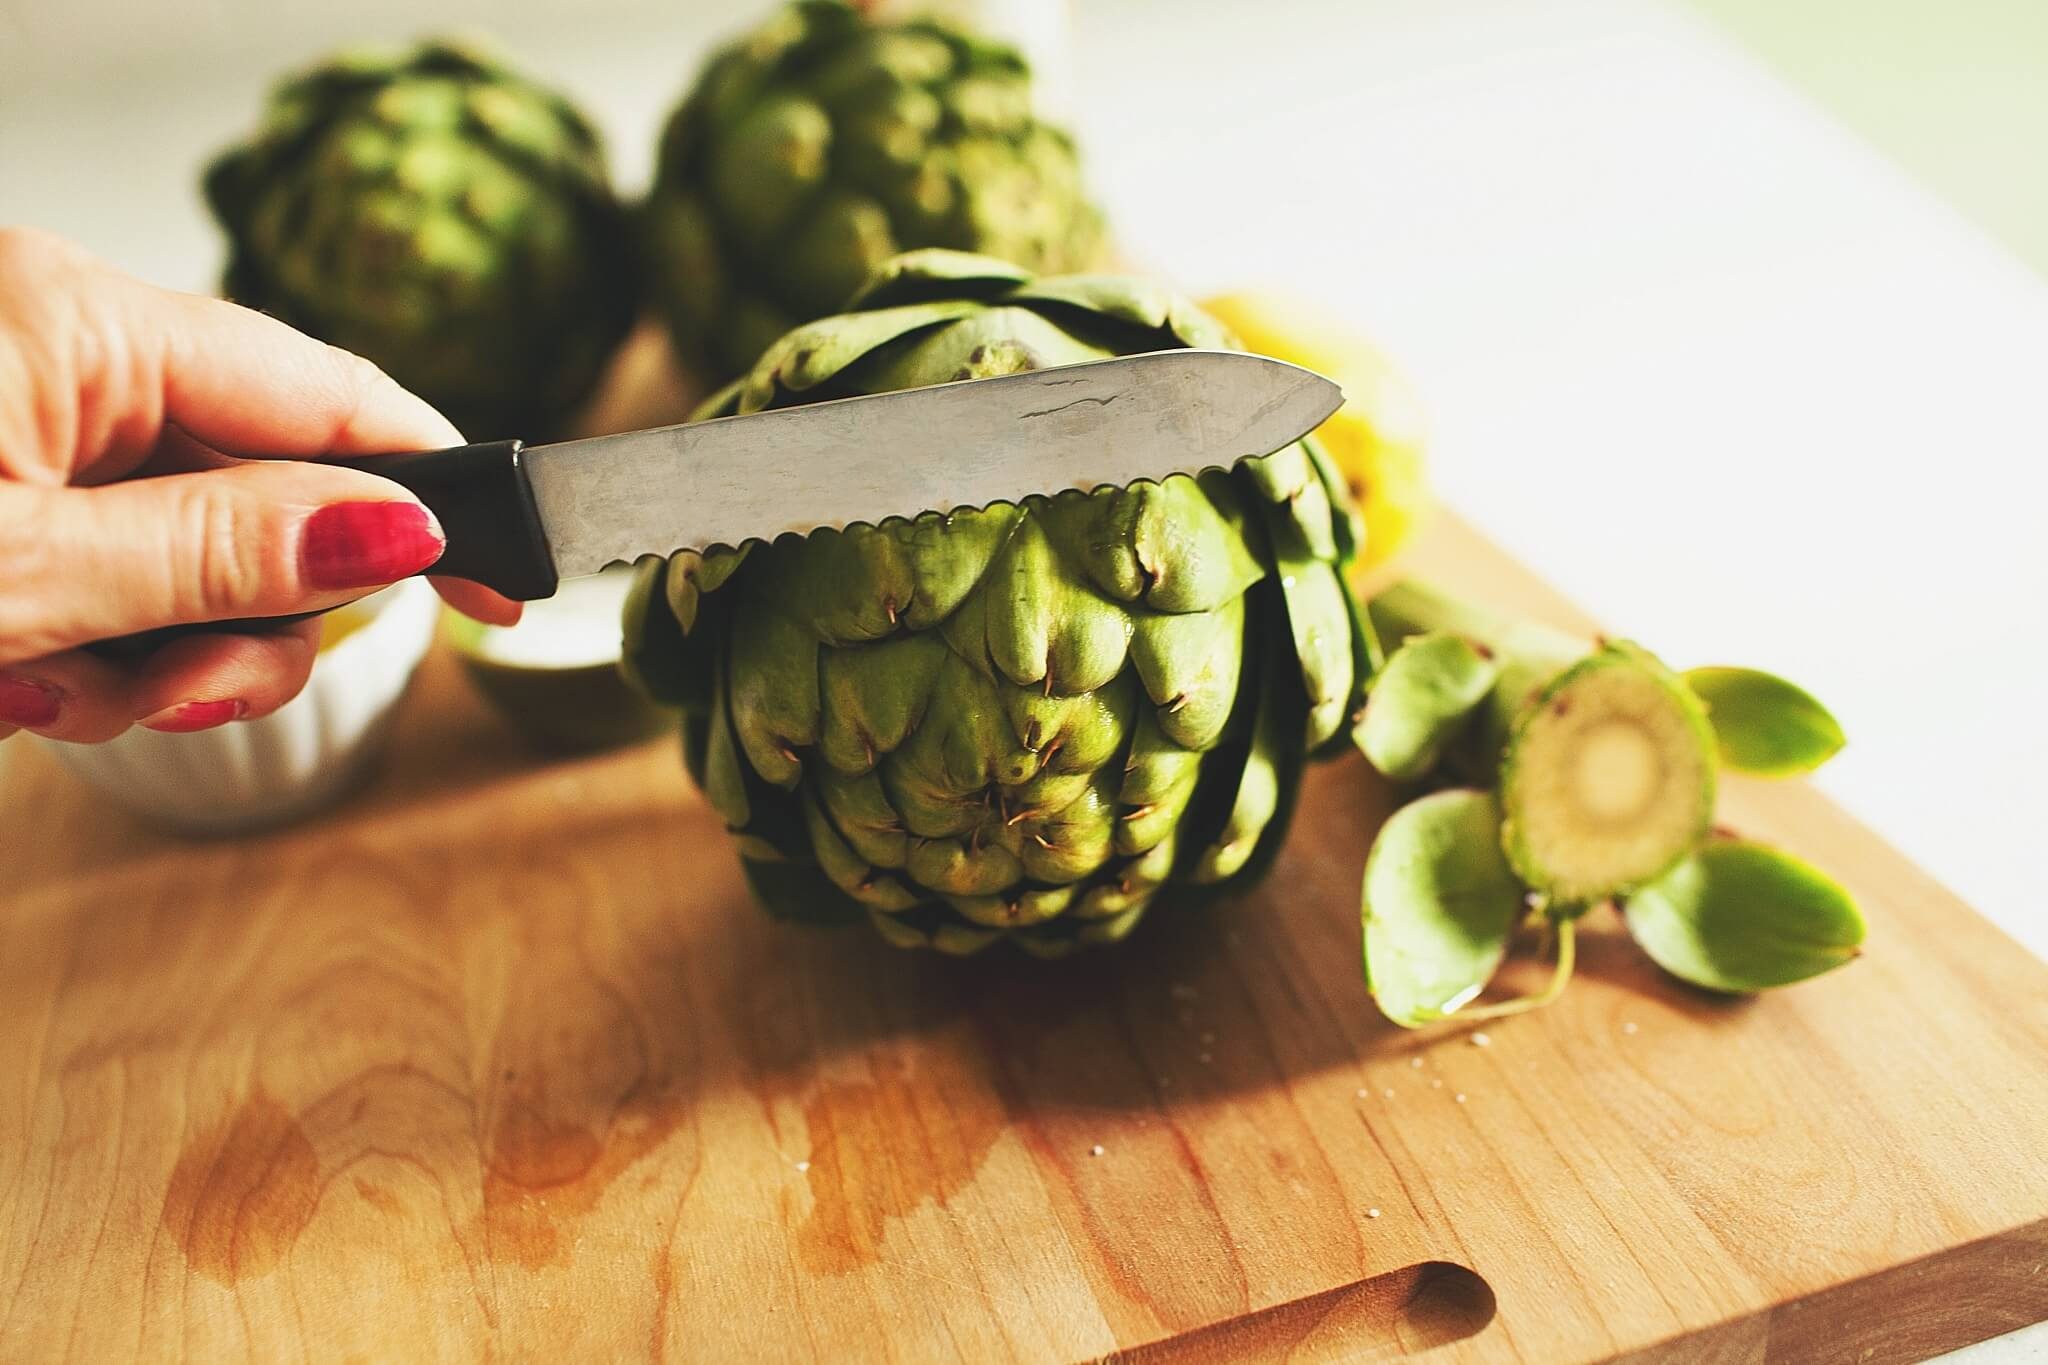 How to Cook Crockpot Artichokes - Step 3: trim the top